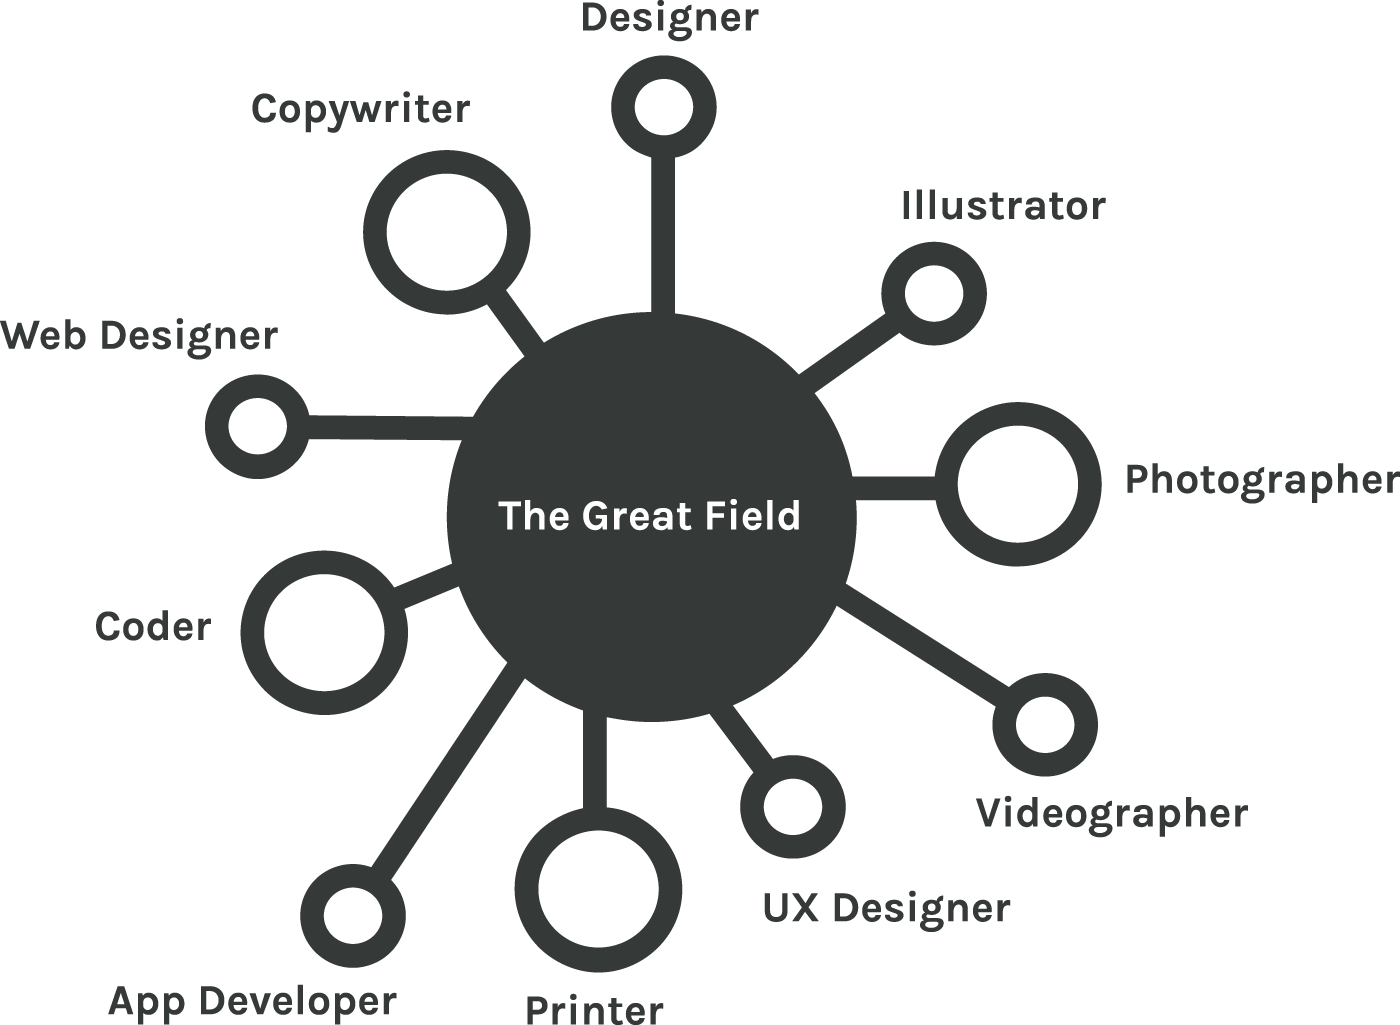 The Great Field founders, Jamie and Samm Bridle design collective